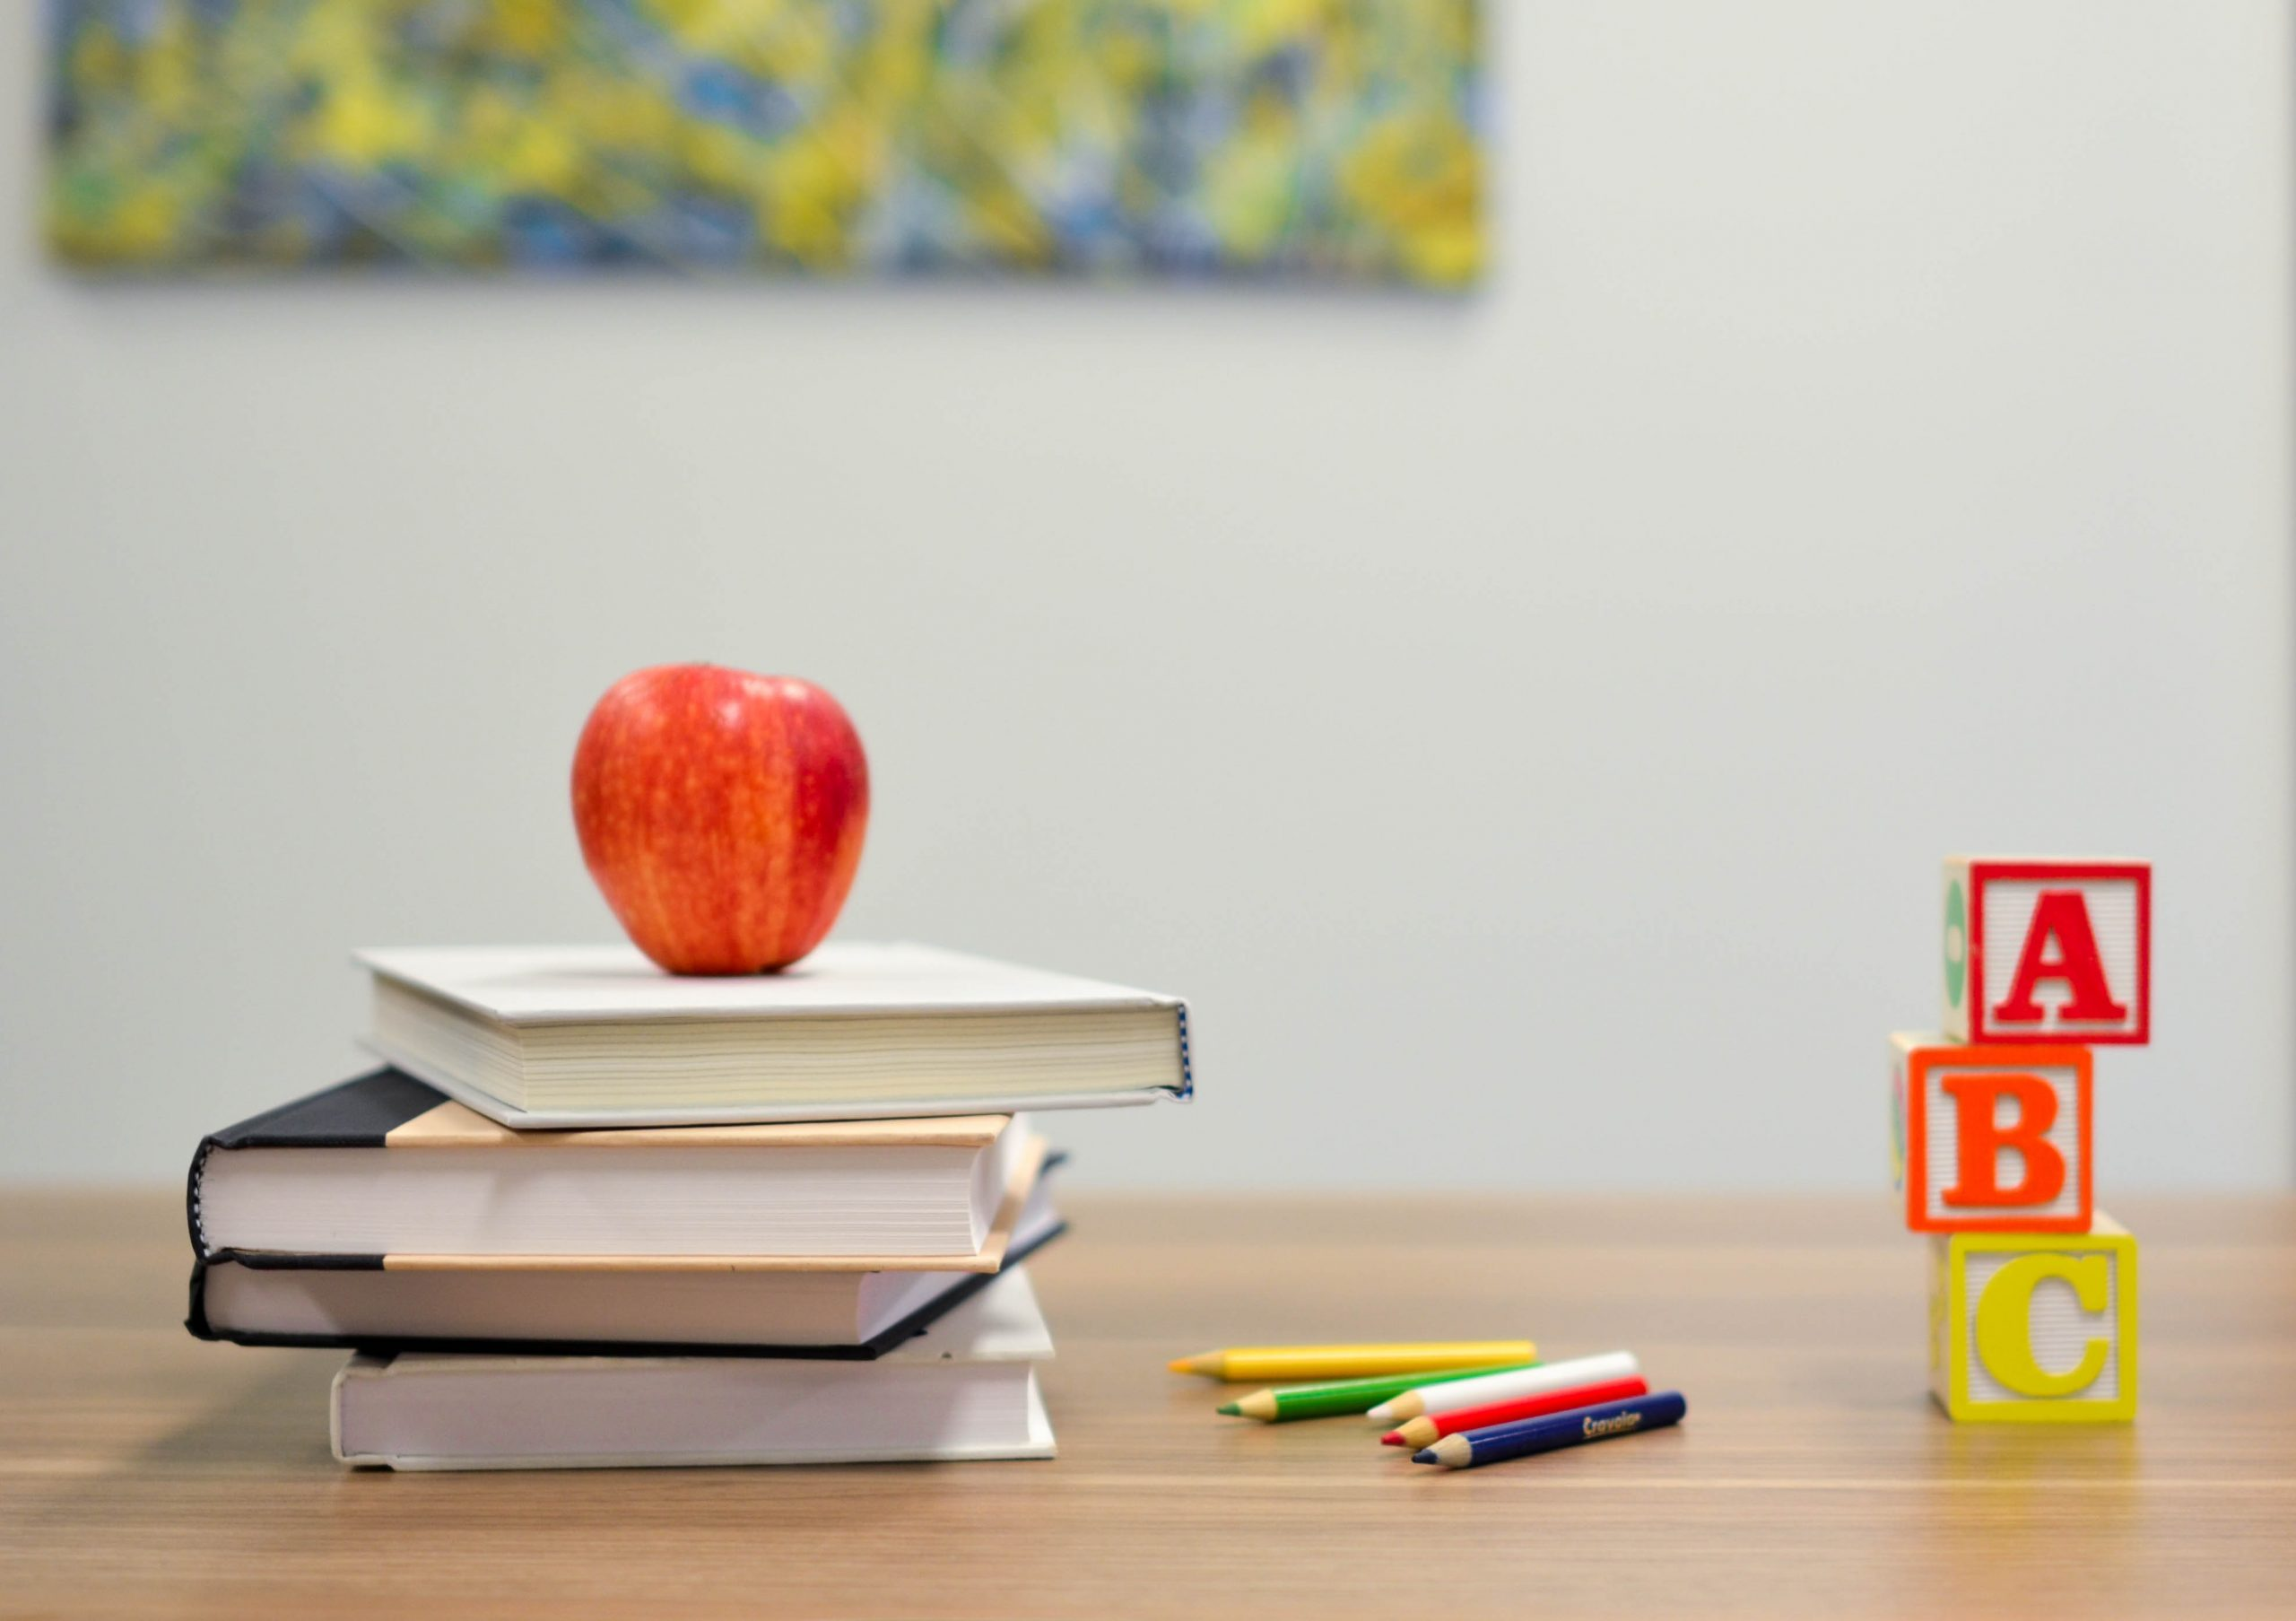 A teachers desk-top in a classroom. An apple sits on top of a stack of books next to some pencil-crayons and a tower of three alphabet blocks.